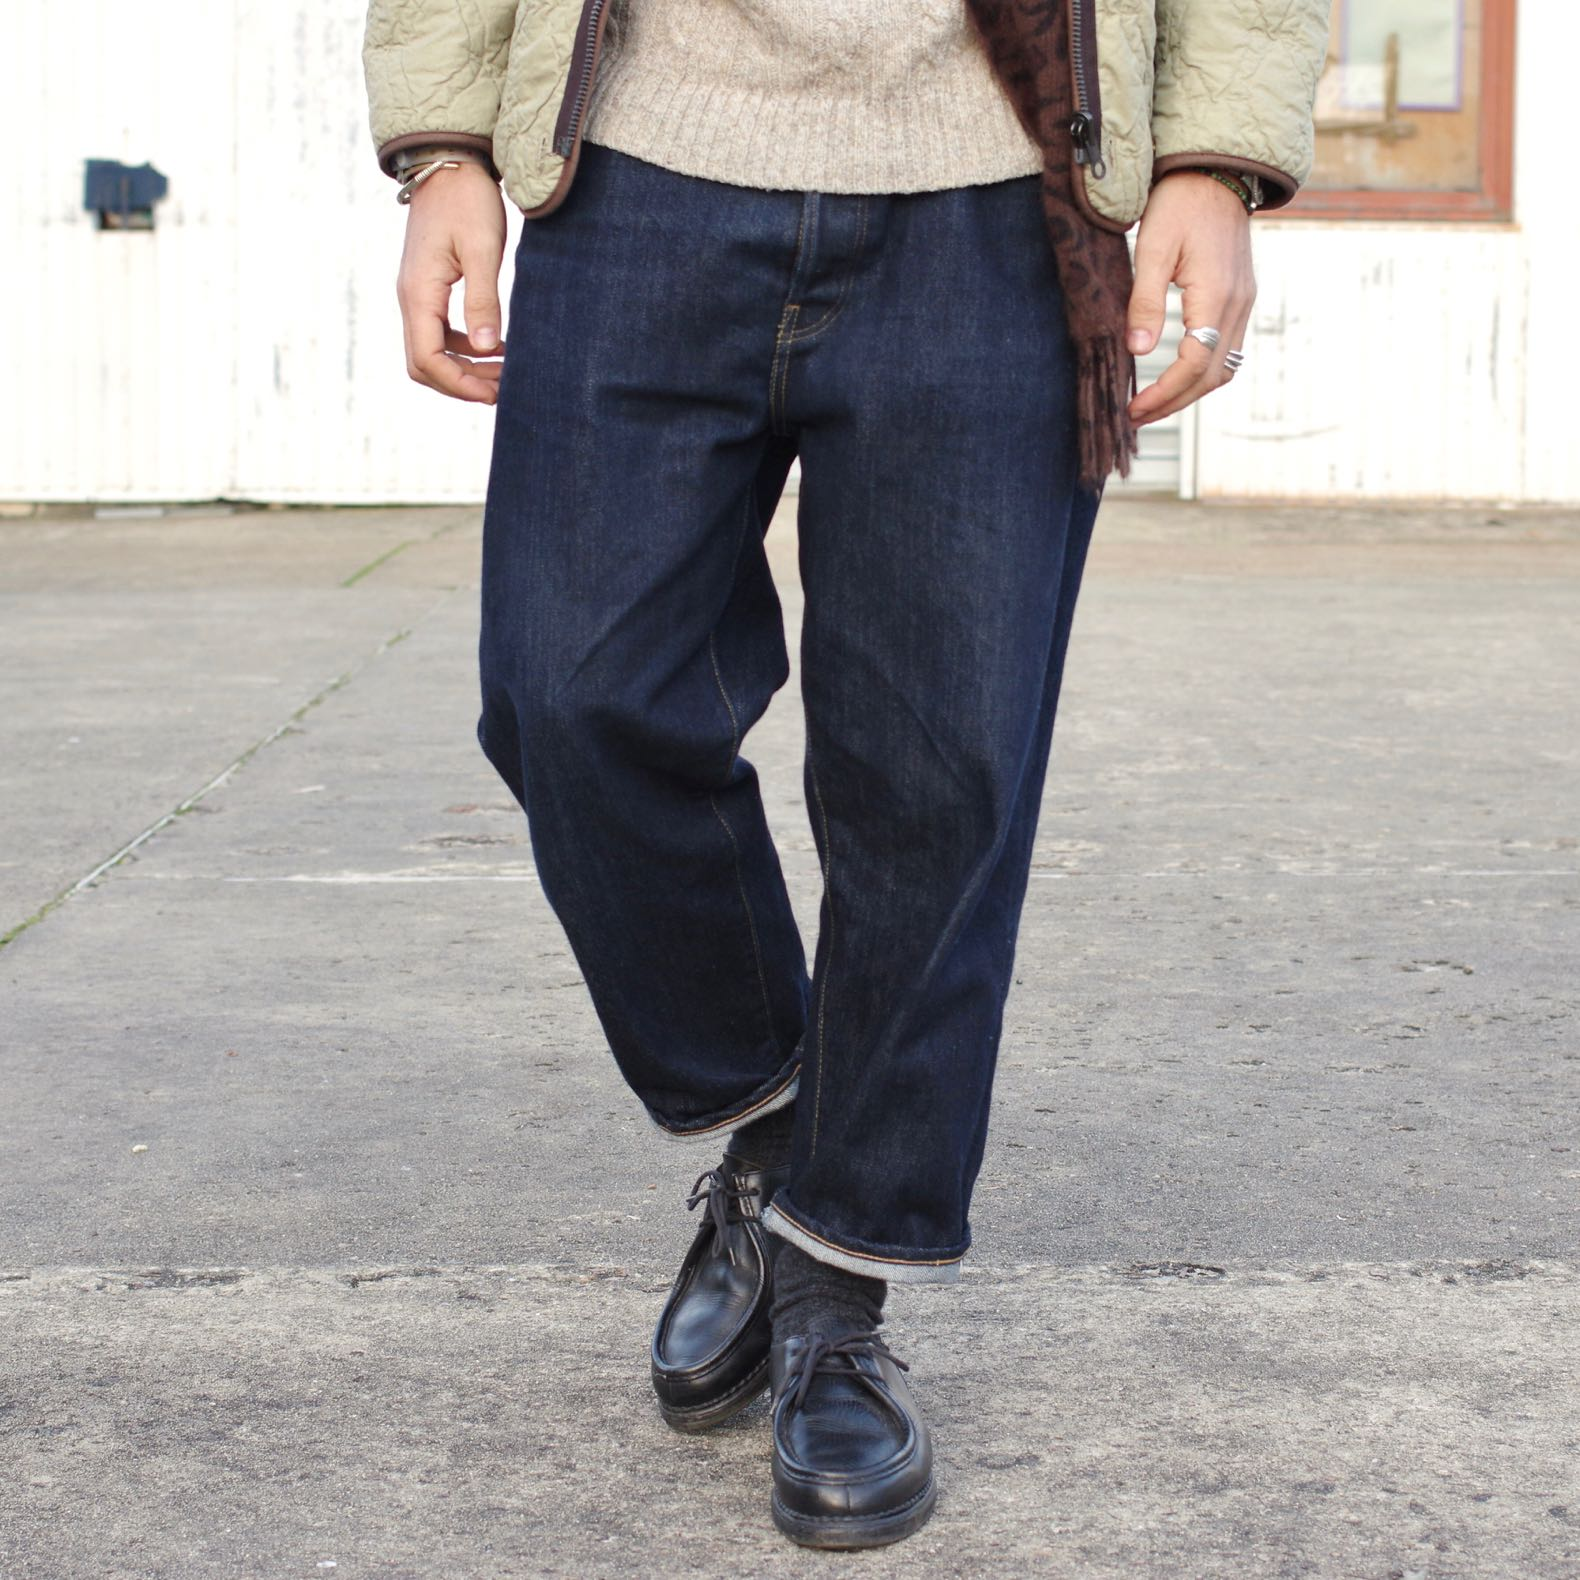 comment porter un jean ample couple tapered size-up